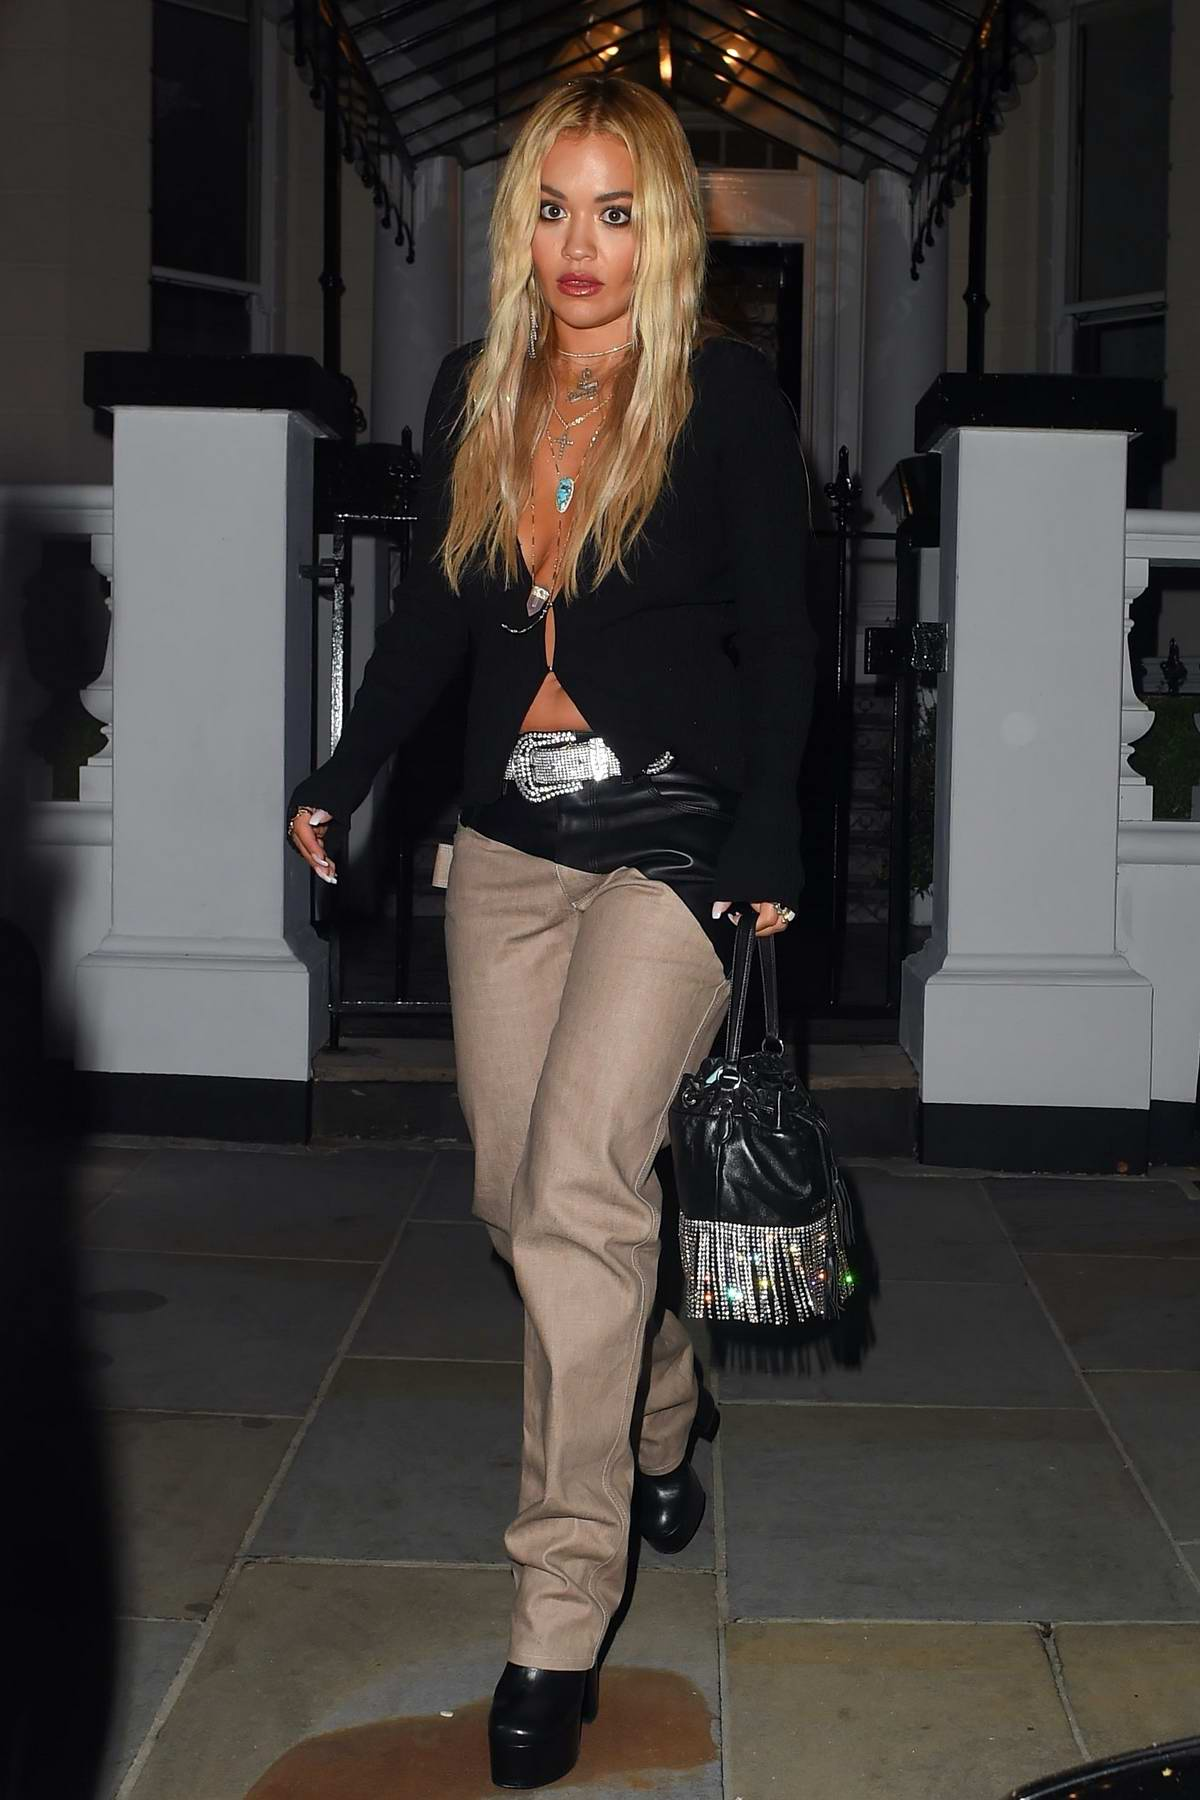 Rita Ora keeps it stylish as she heads for a night out in London, UK